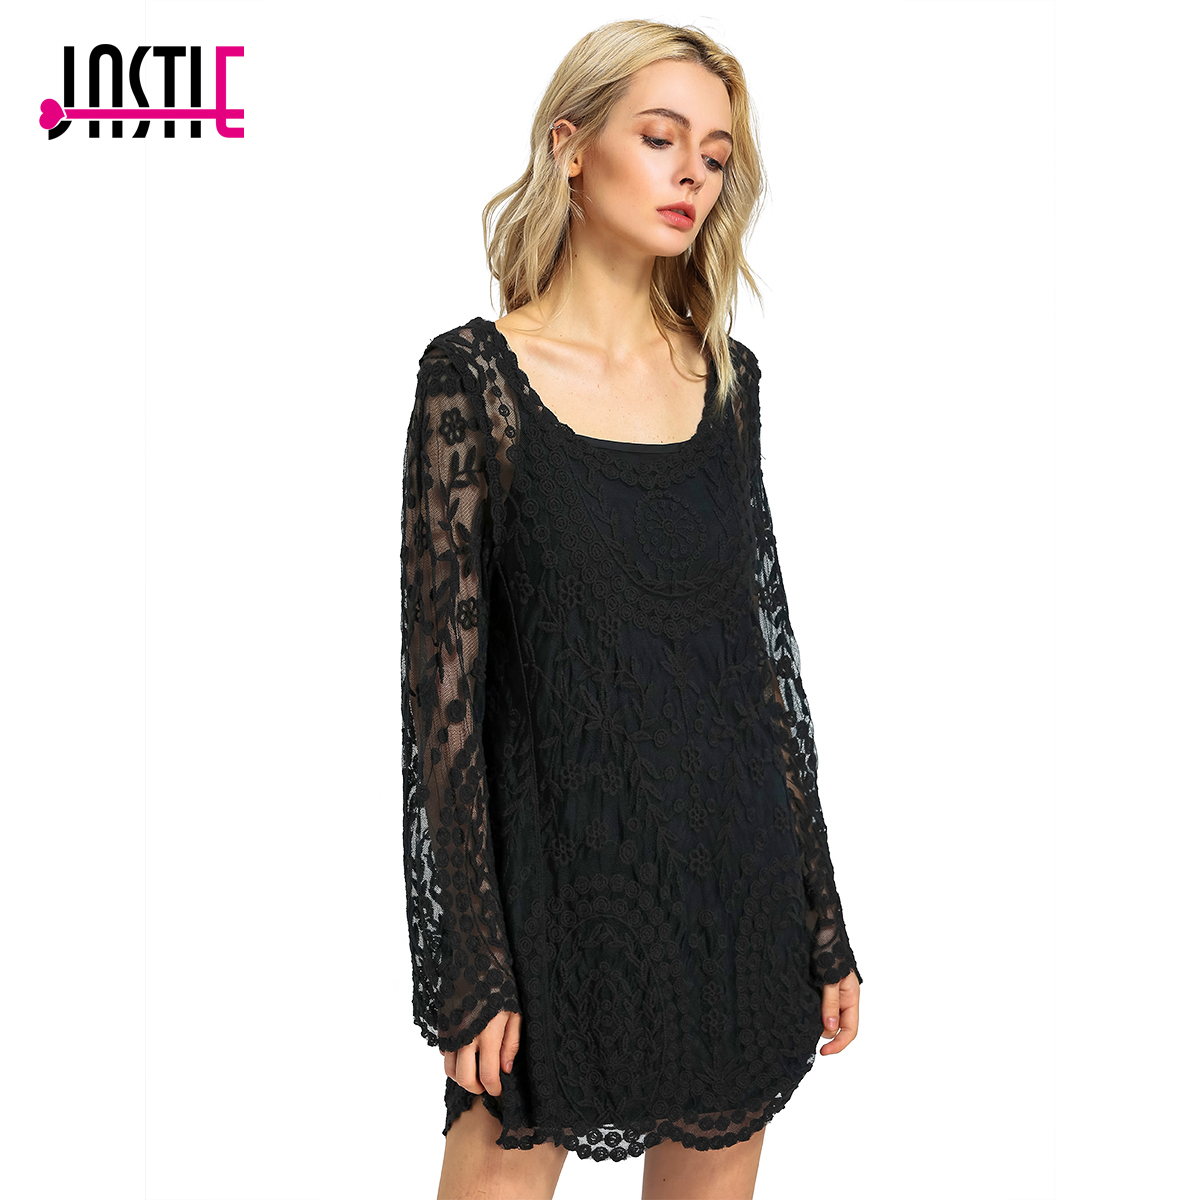 ซื้อที่ดีที่สุด ) }}Jastie Commemorative Bell Sleeve Dress Casual femininos Crochet Floral Lace